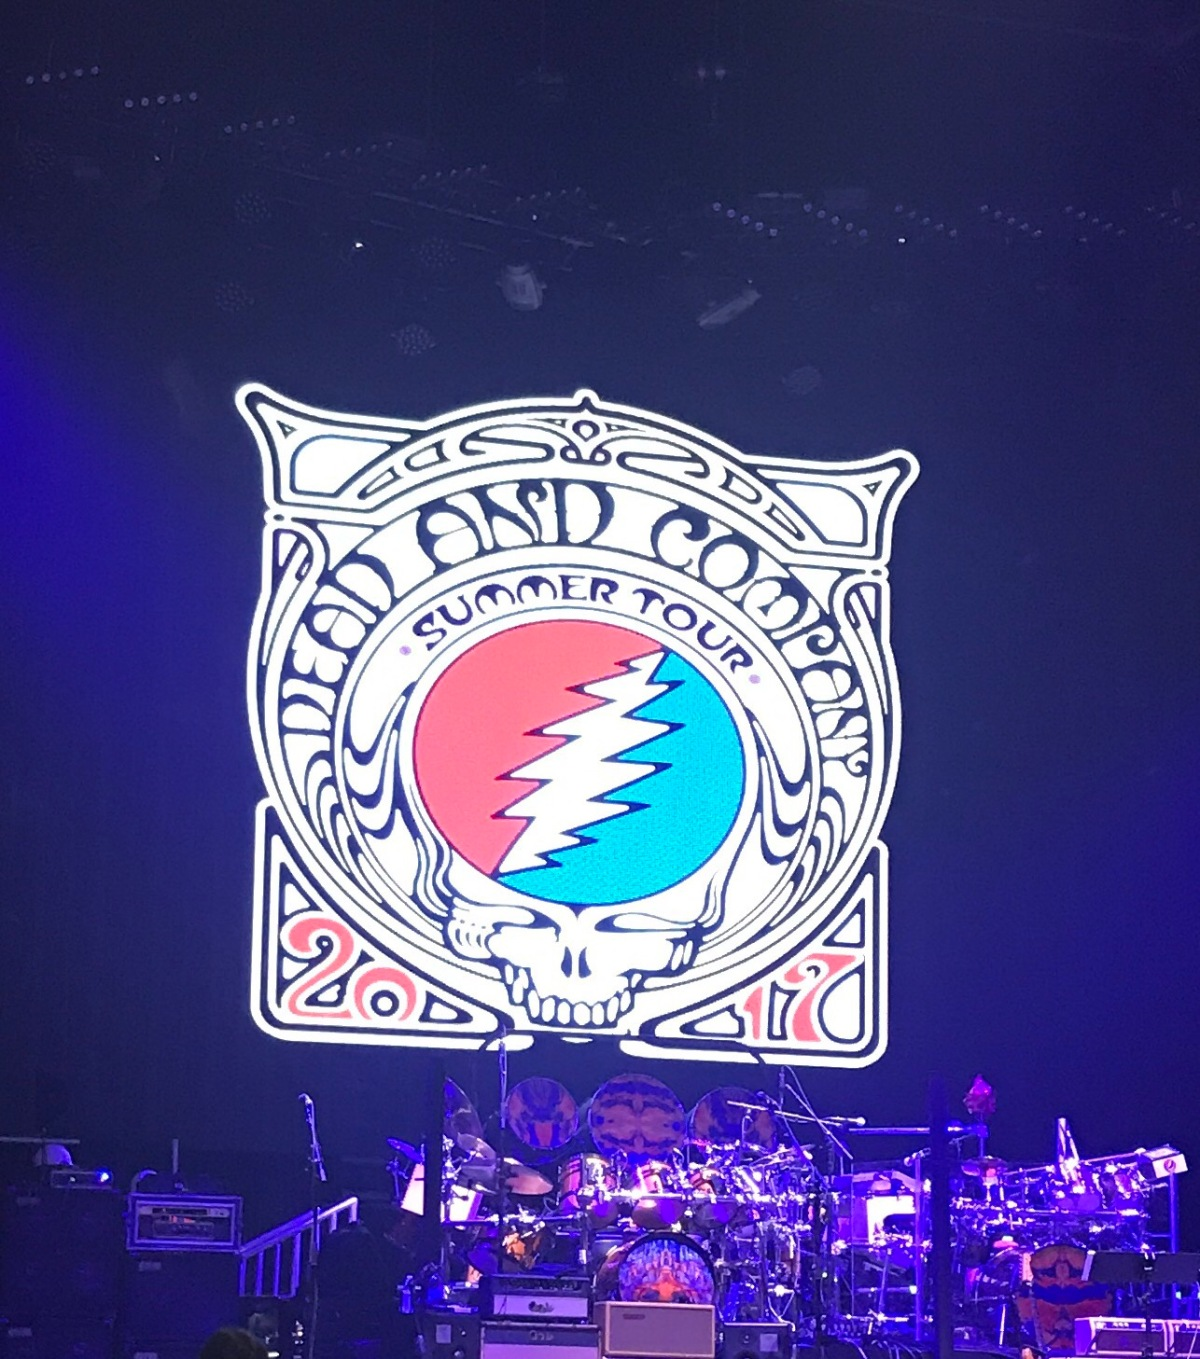 concert diaries | one night with dead and co